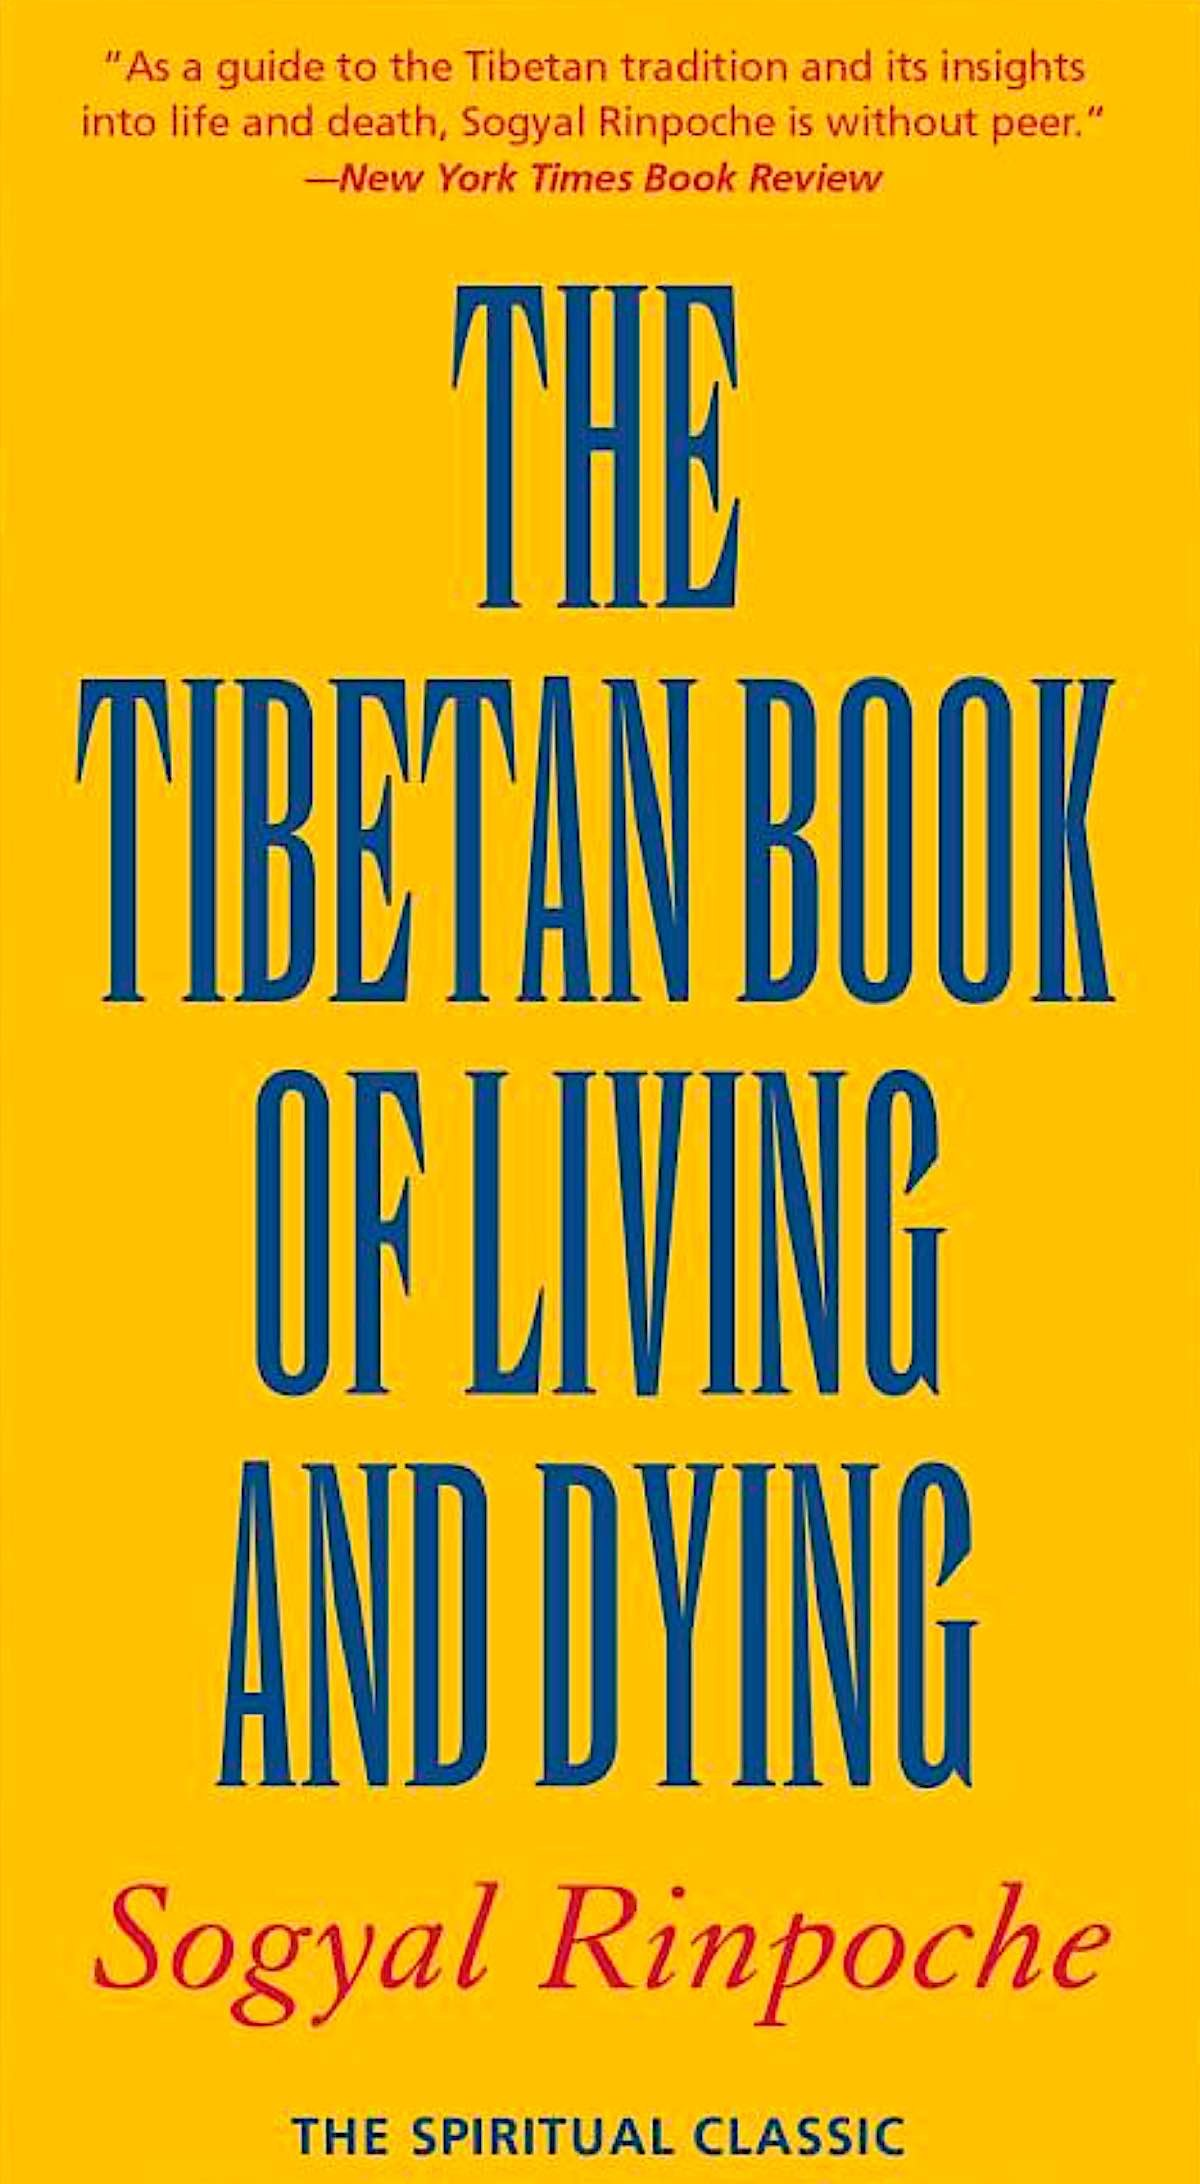 Buddha Weekly The Tibetan Book of the Living and Dying by Sogyal Rinpoche Buddhism